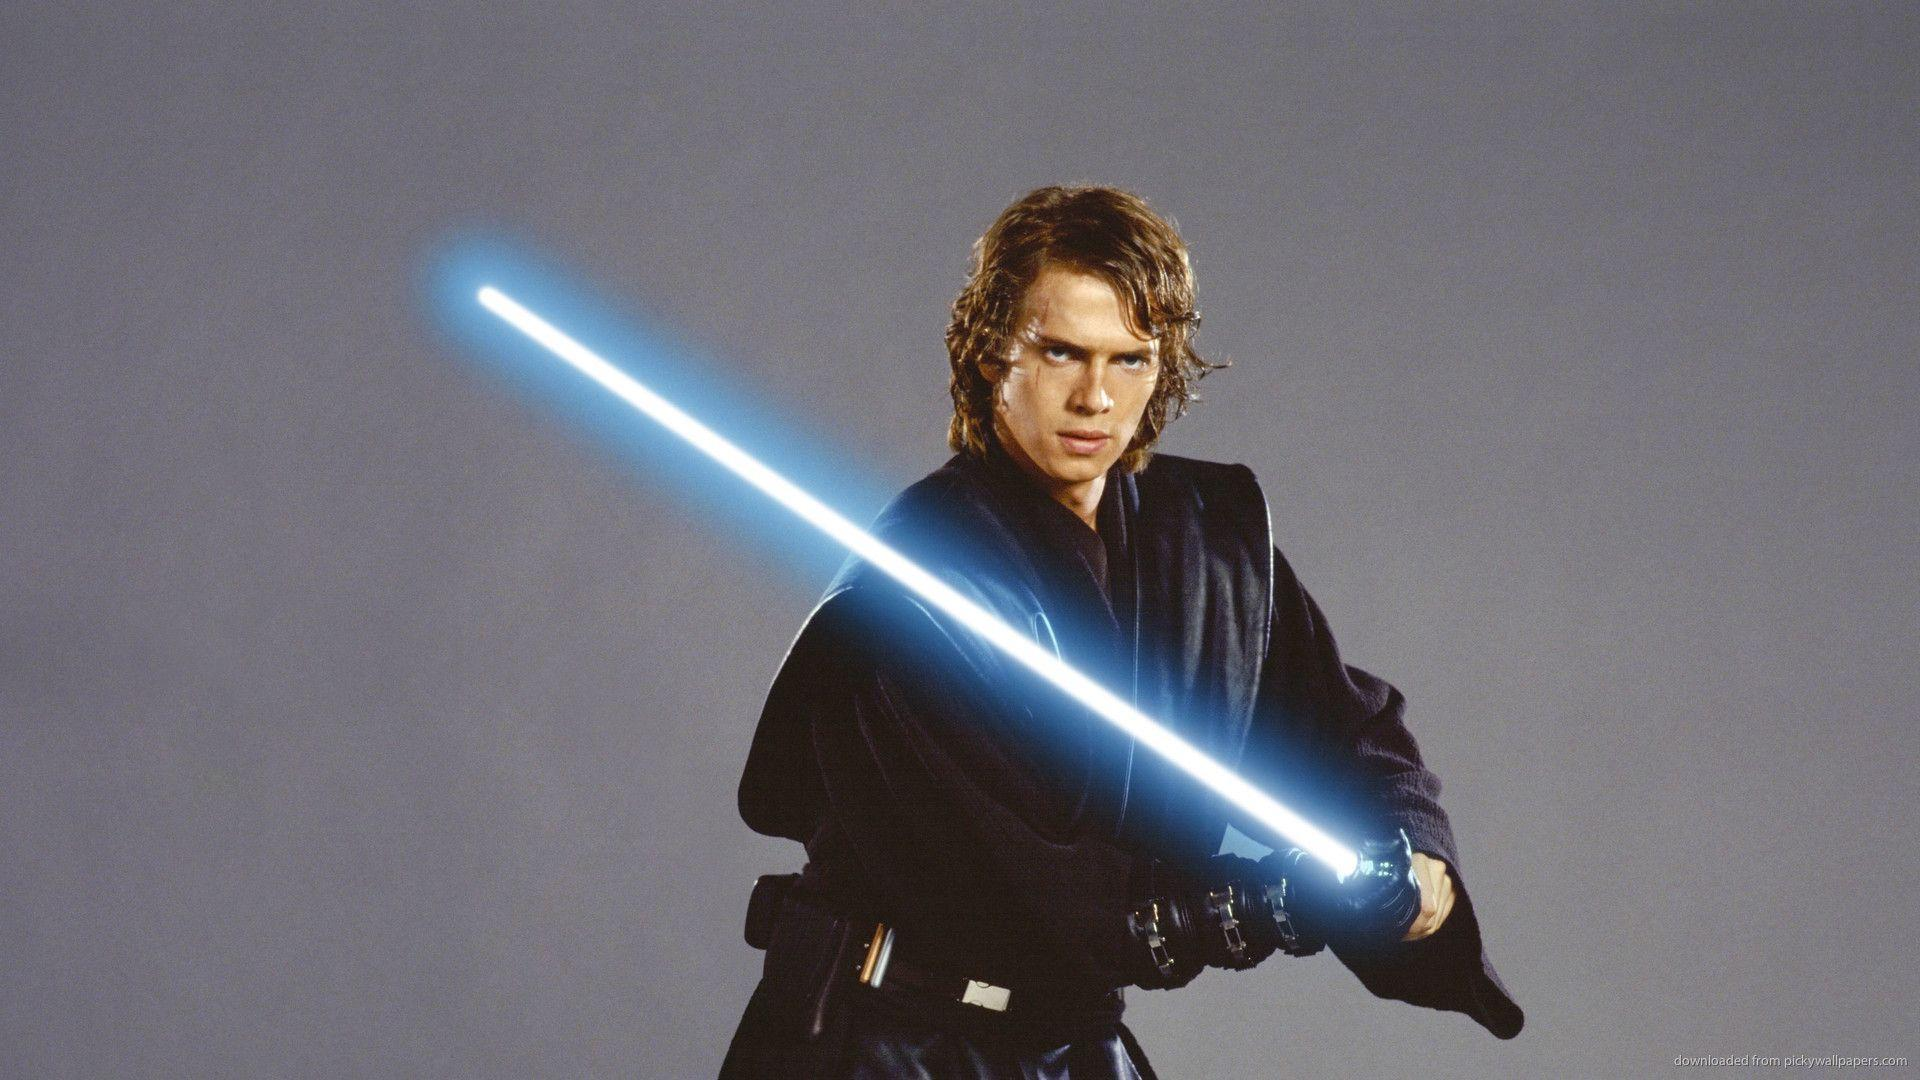 Anakin Skywalker Jedi Anakin Skywalker Wallpapers - Wallpaper Cave